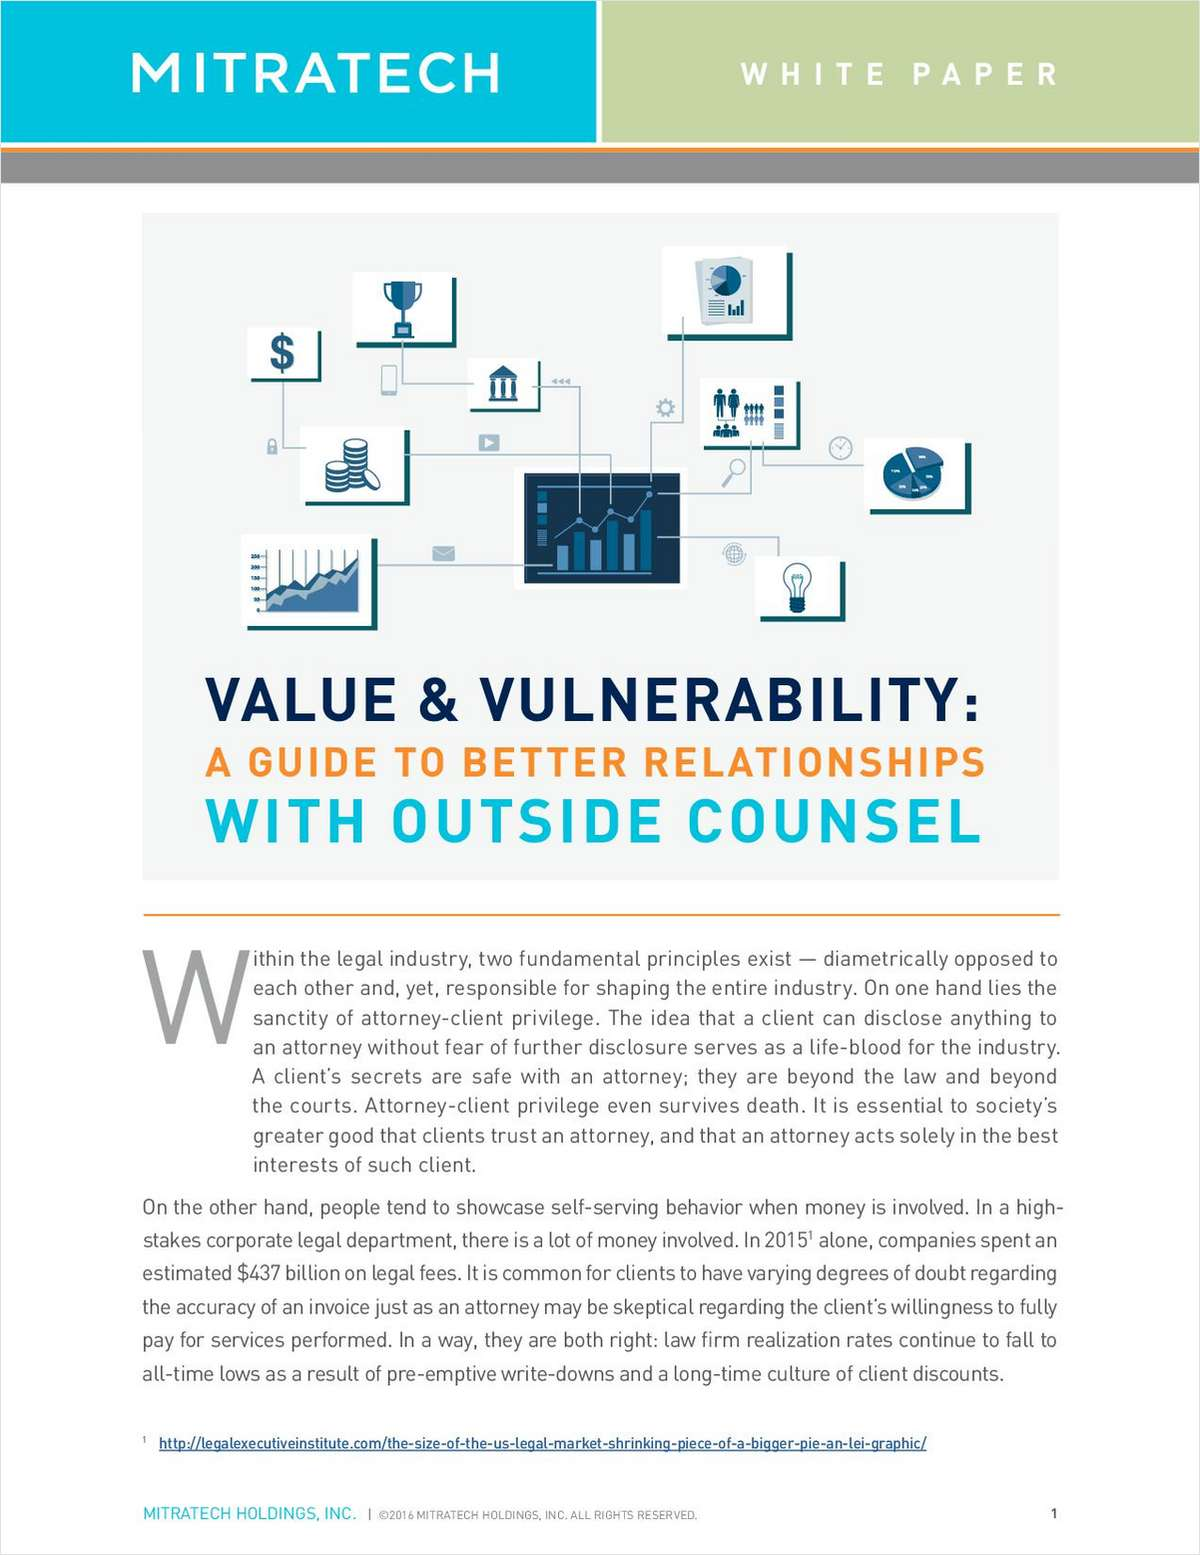 Value & Vulnerability: A Guide to Better Relationships with Outside Counsel